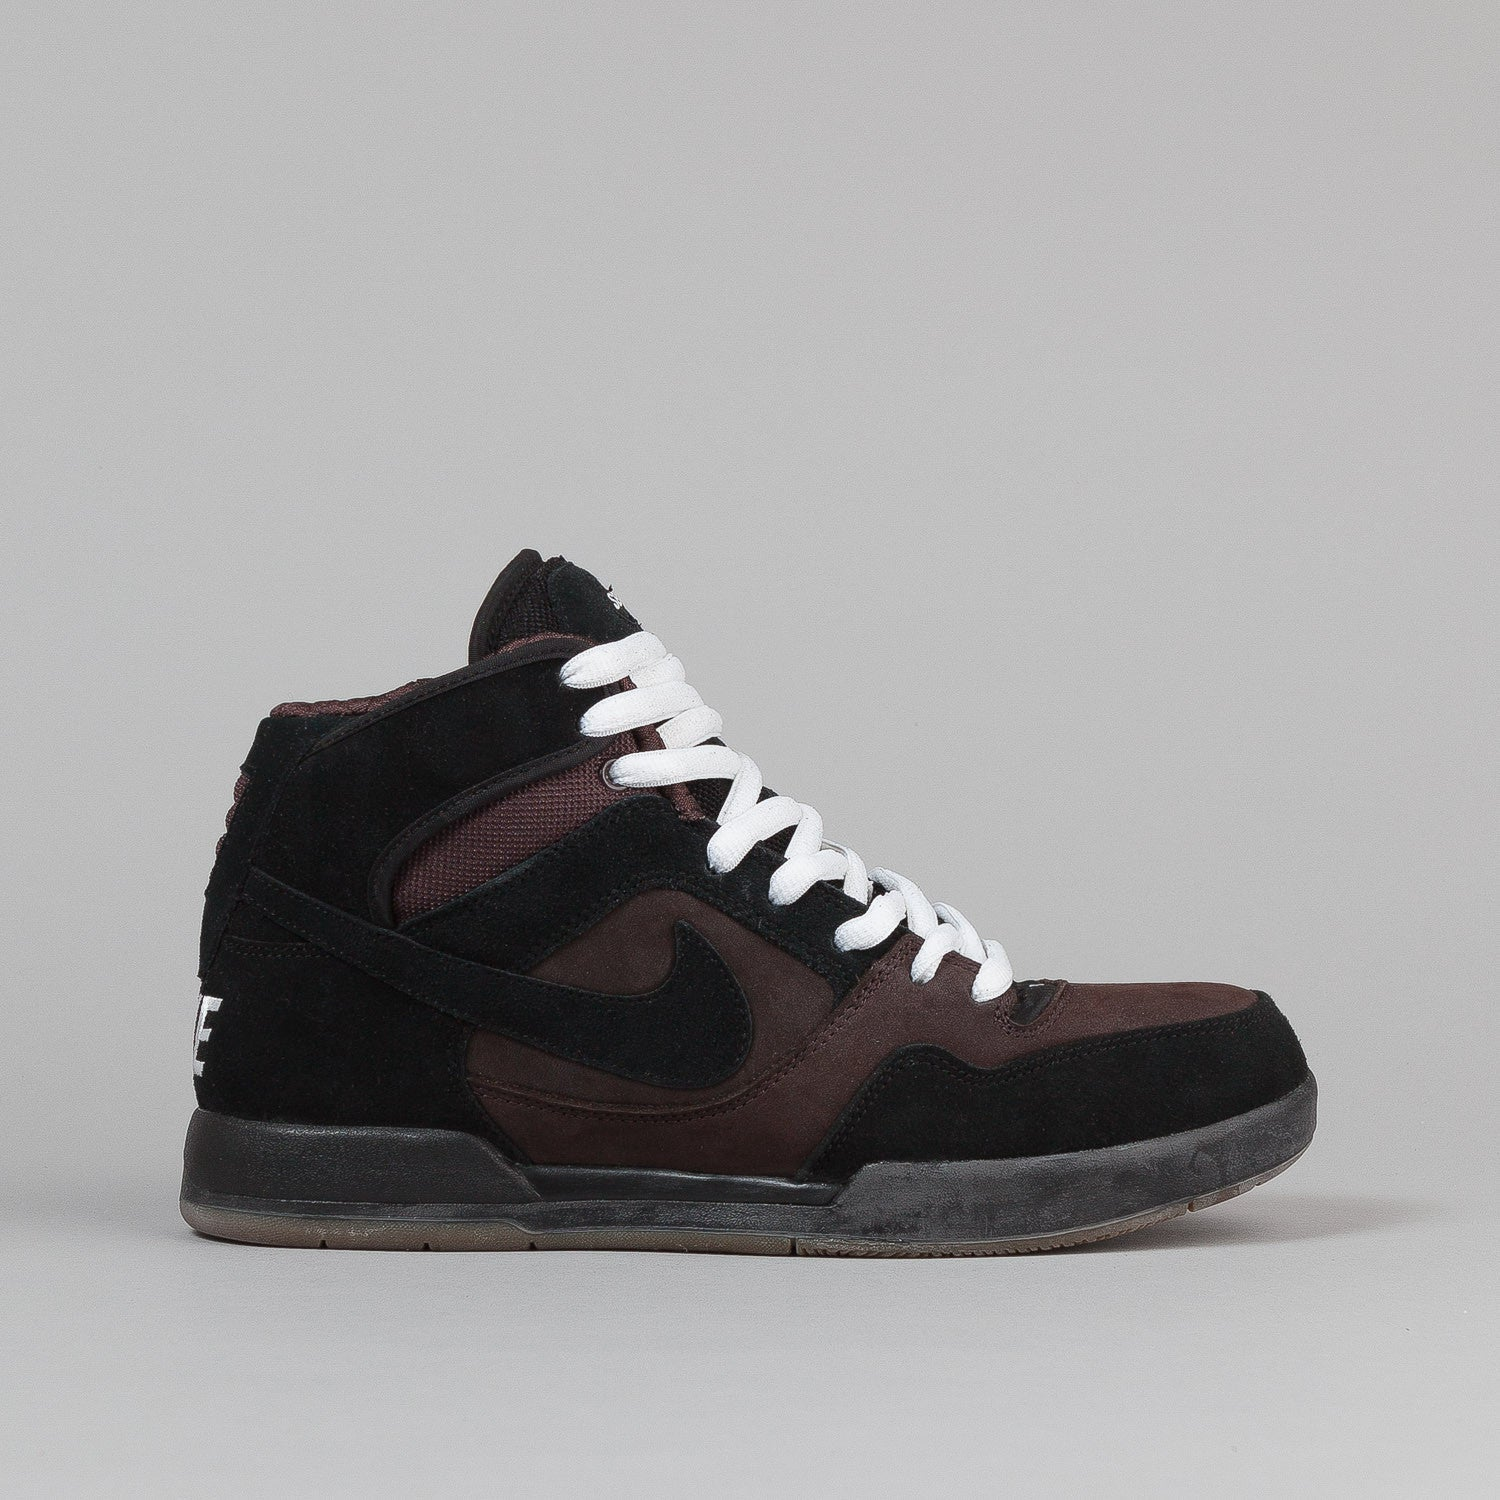 Nike SB Paul Rodriguez 2 High Shoes